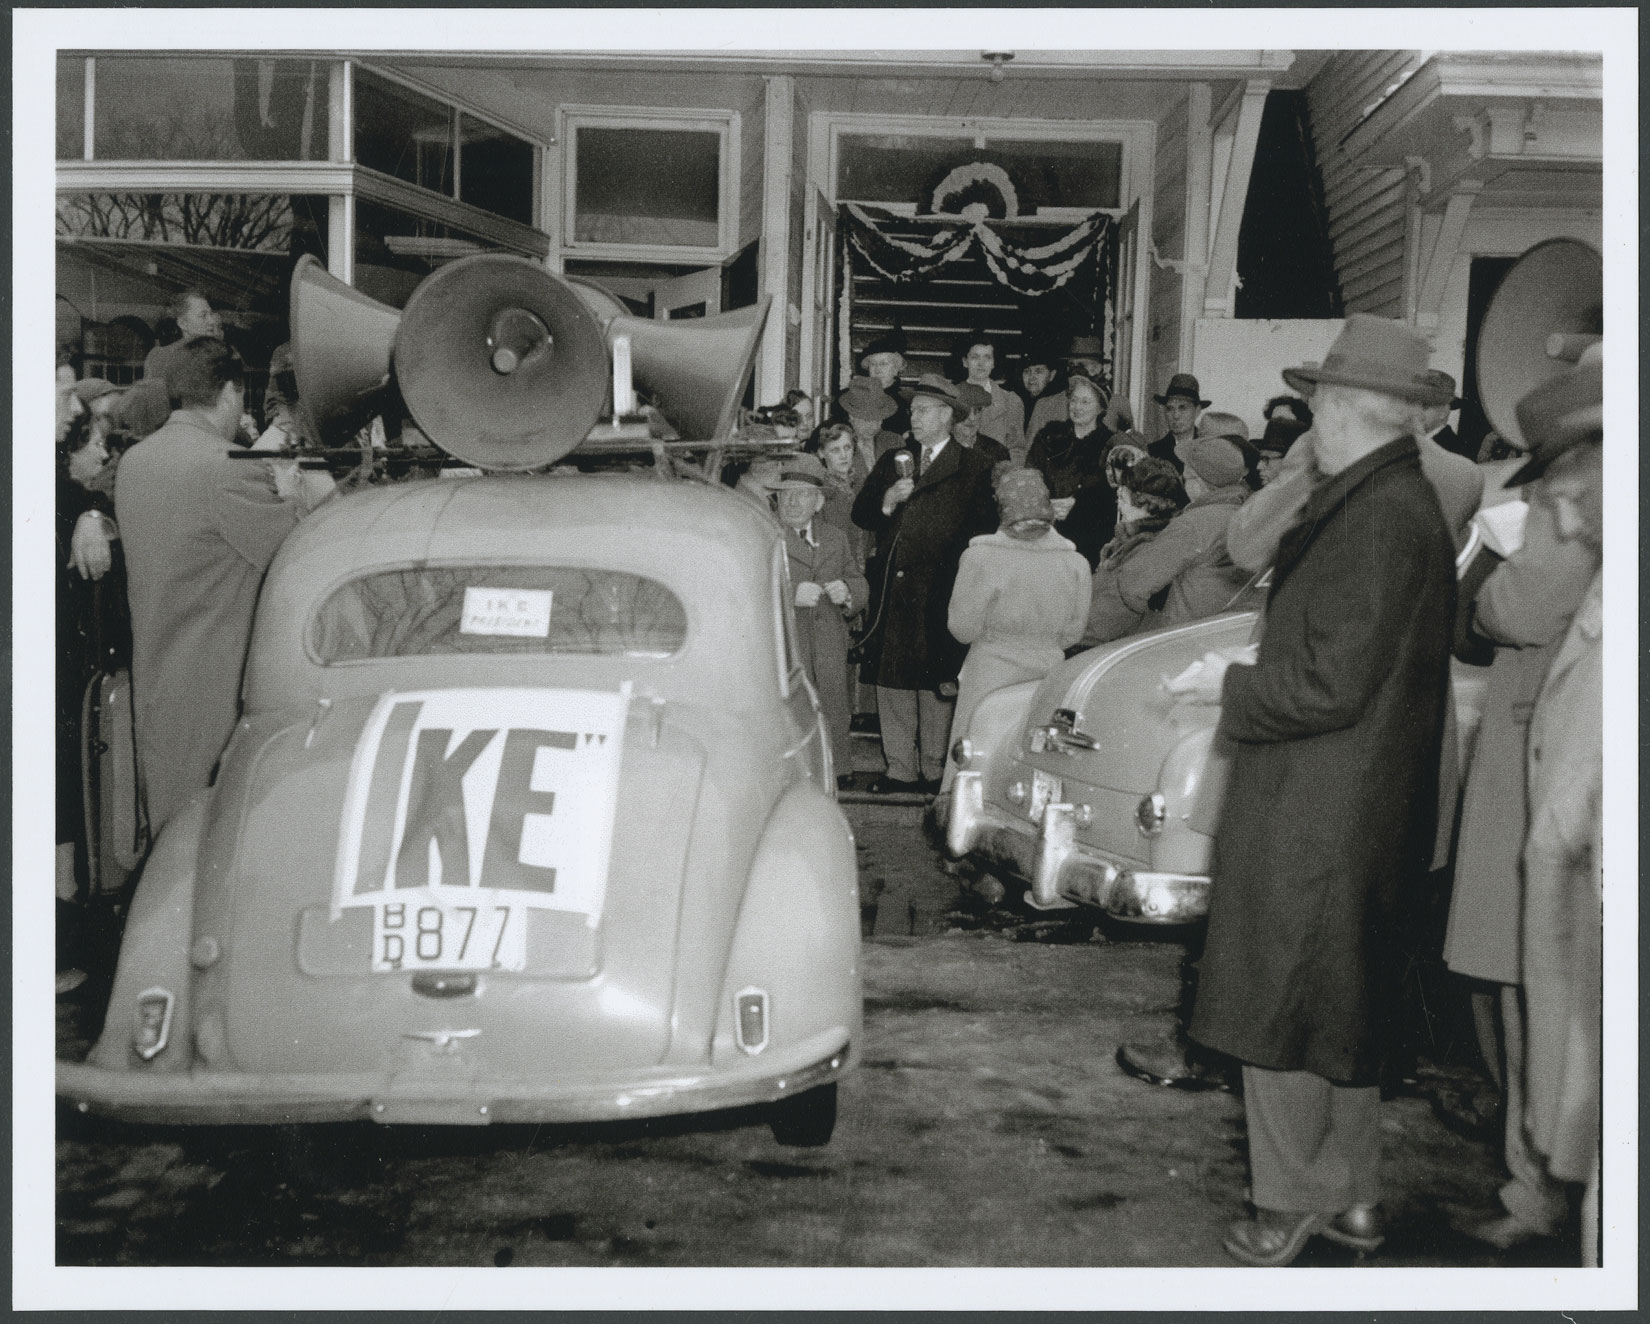 In a photograph of a street scene a man in an overcoat and hat stands near an open doorway on a sidewalk, holding a microphone and speaking to a crowd of people gathered around him. People wear raincoats, women are wearing hats or scarves over their heads, and men are wearing hats. A car parked at the curb has loudspeakers on its roof and a sign reading